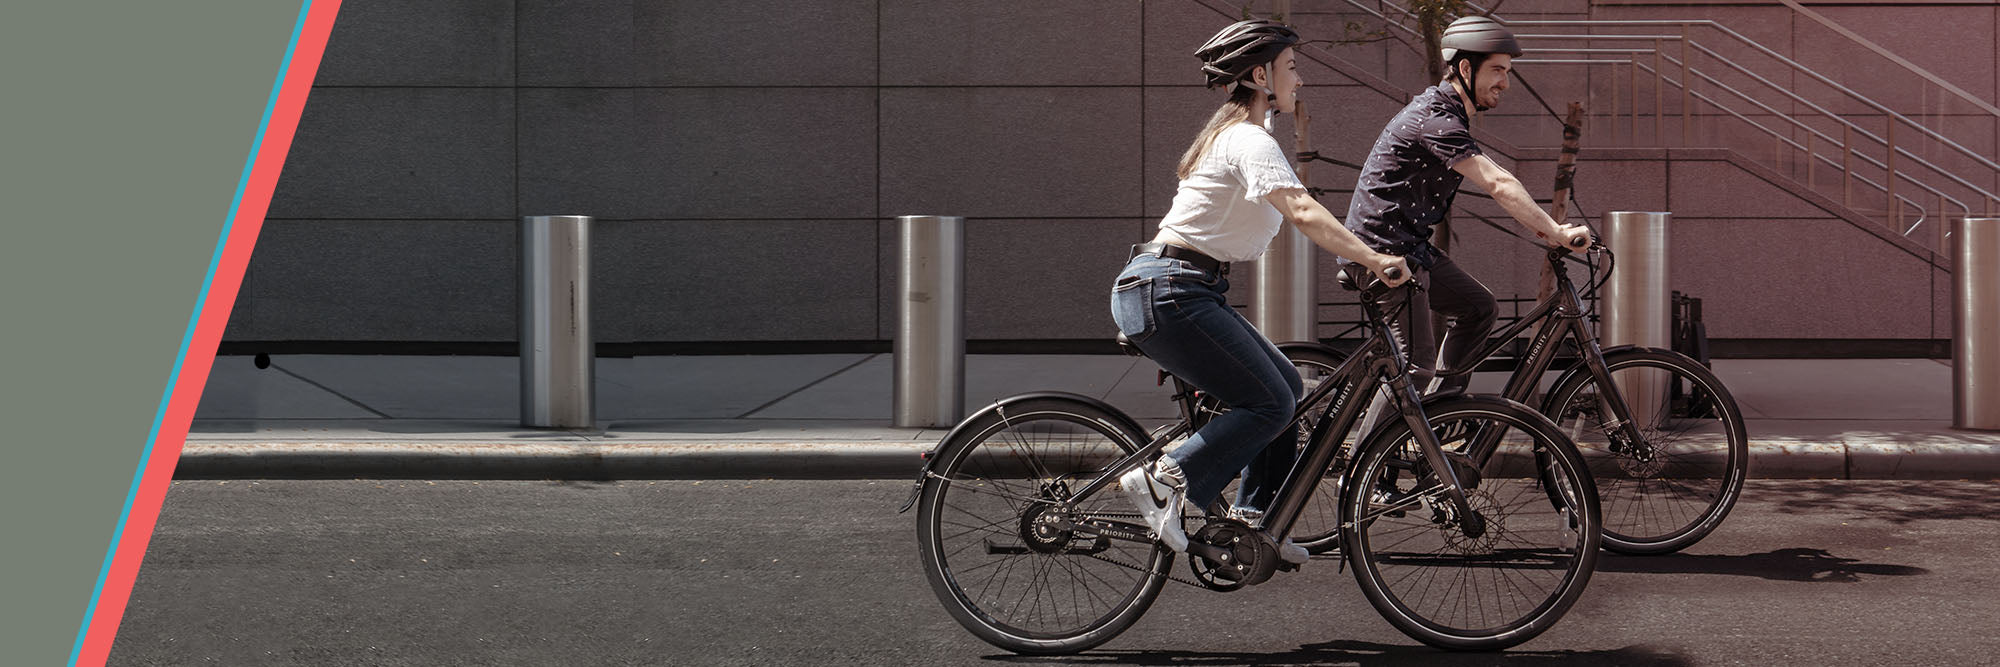 "<a href=""https://www.prioritybicycles.com/pages/bicycles-new"">          <img alt=""priority bicycles"" src=""https://cdn.shopify.com/s/files/1/1245/1481/files/homepage_42820v2.png?v=1588101684""></a>"